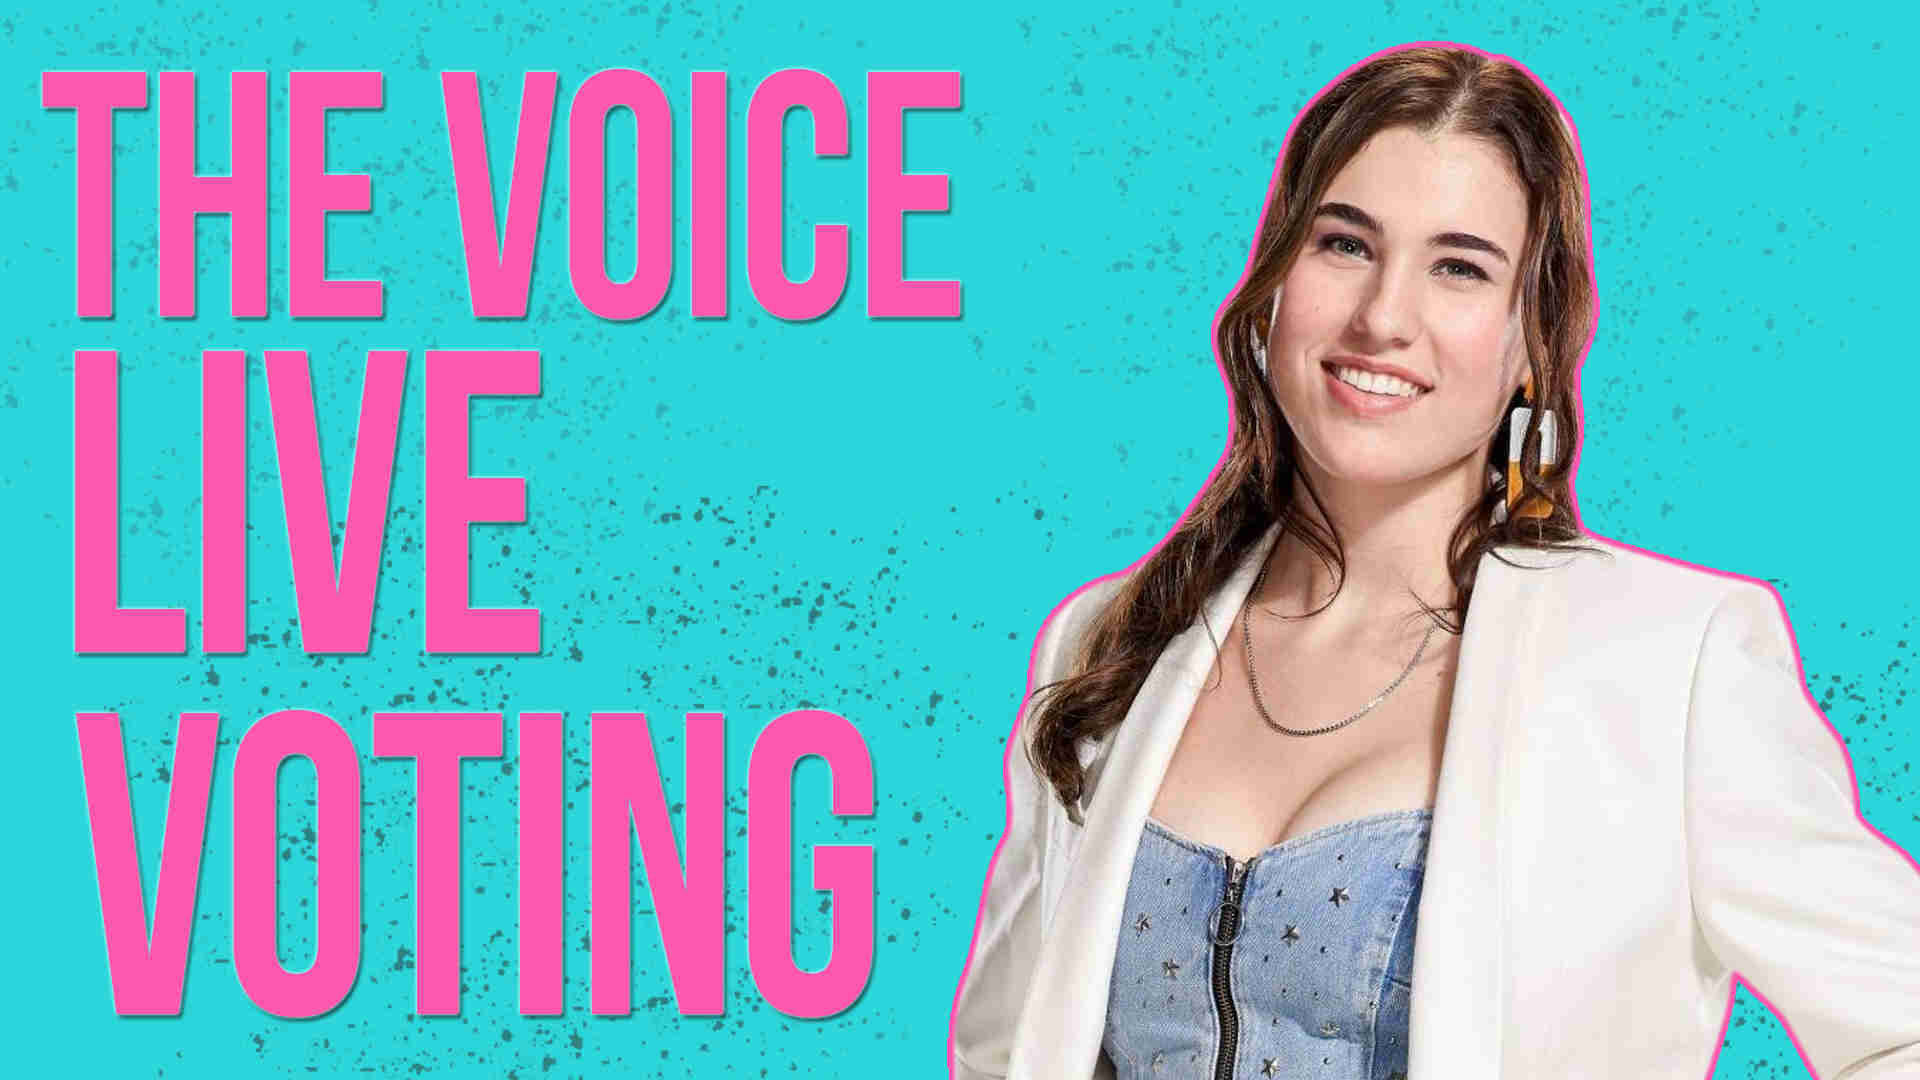 Vote Joanna Serenko The Voice USA 2020 Top 17 Playoffs Voting Tonight on 4 May 2020